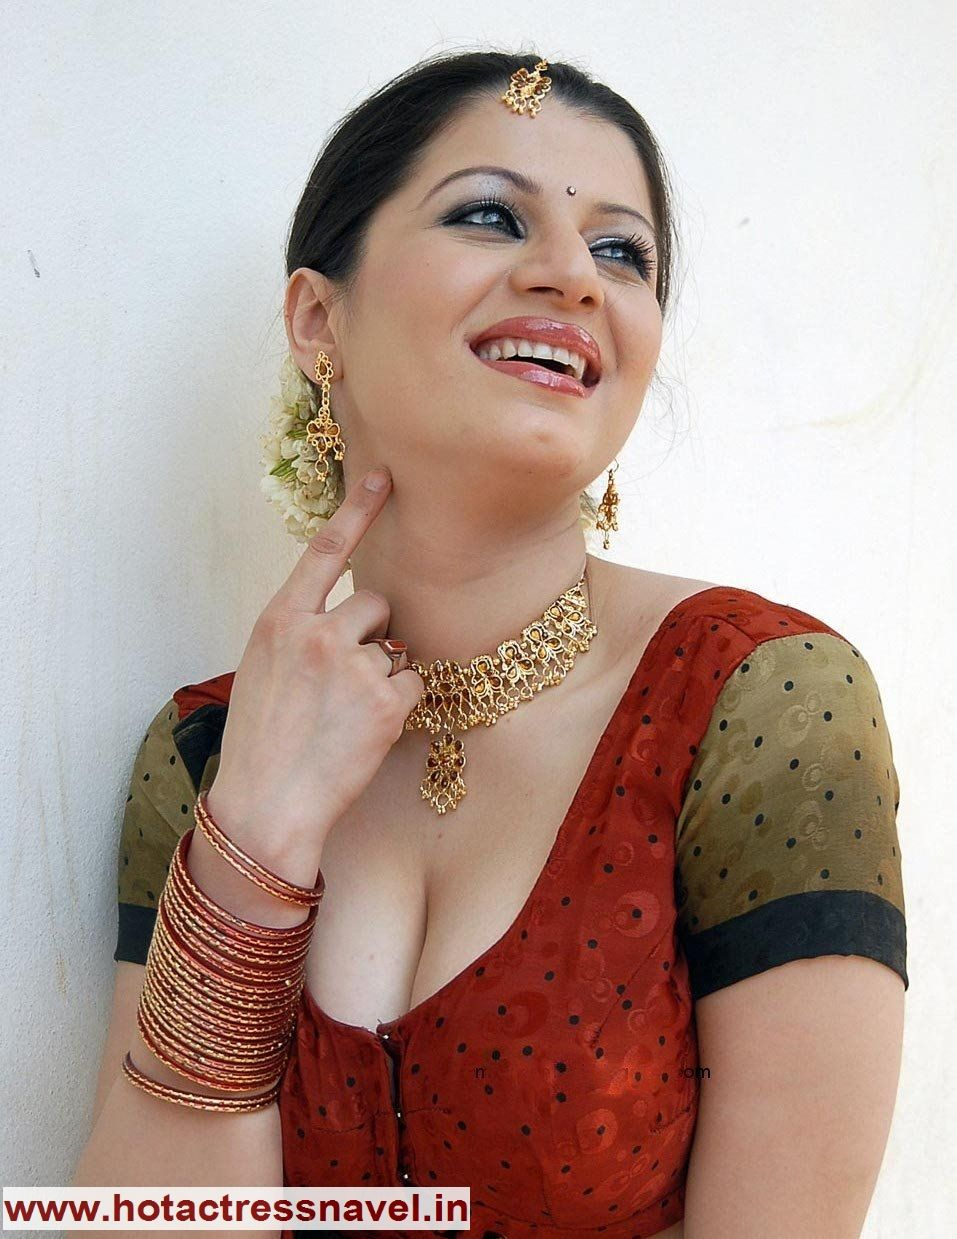 www.hotactressnavel.in bollywood, telugu, tamil, malayalam, hindi